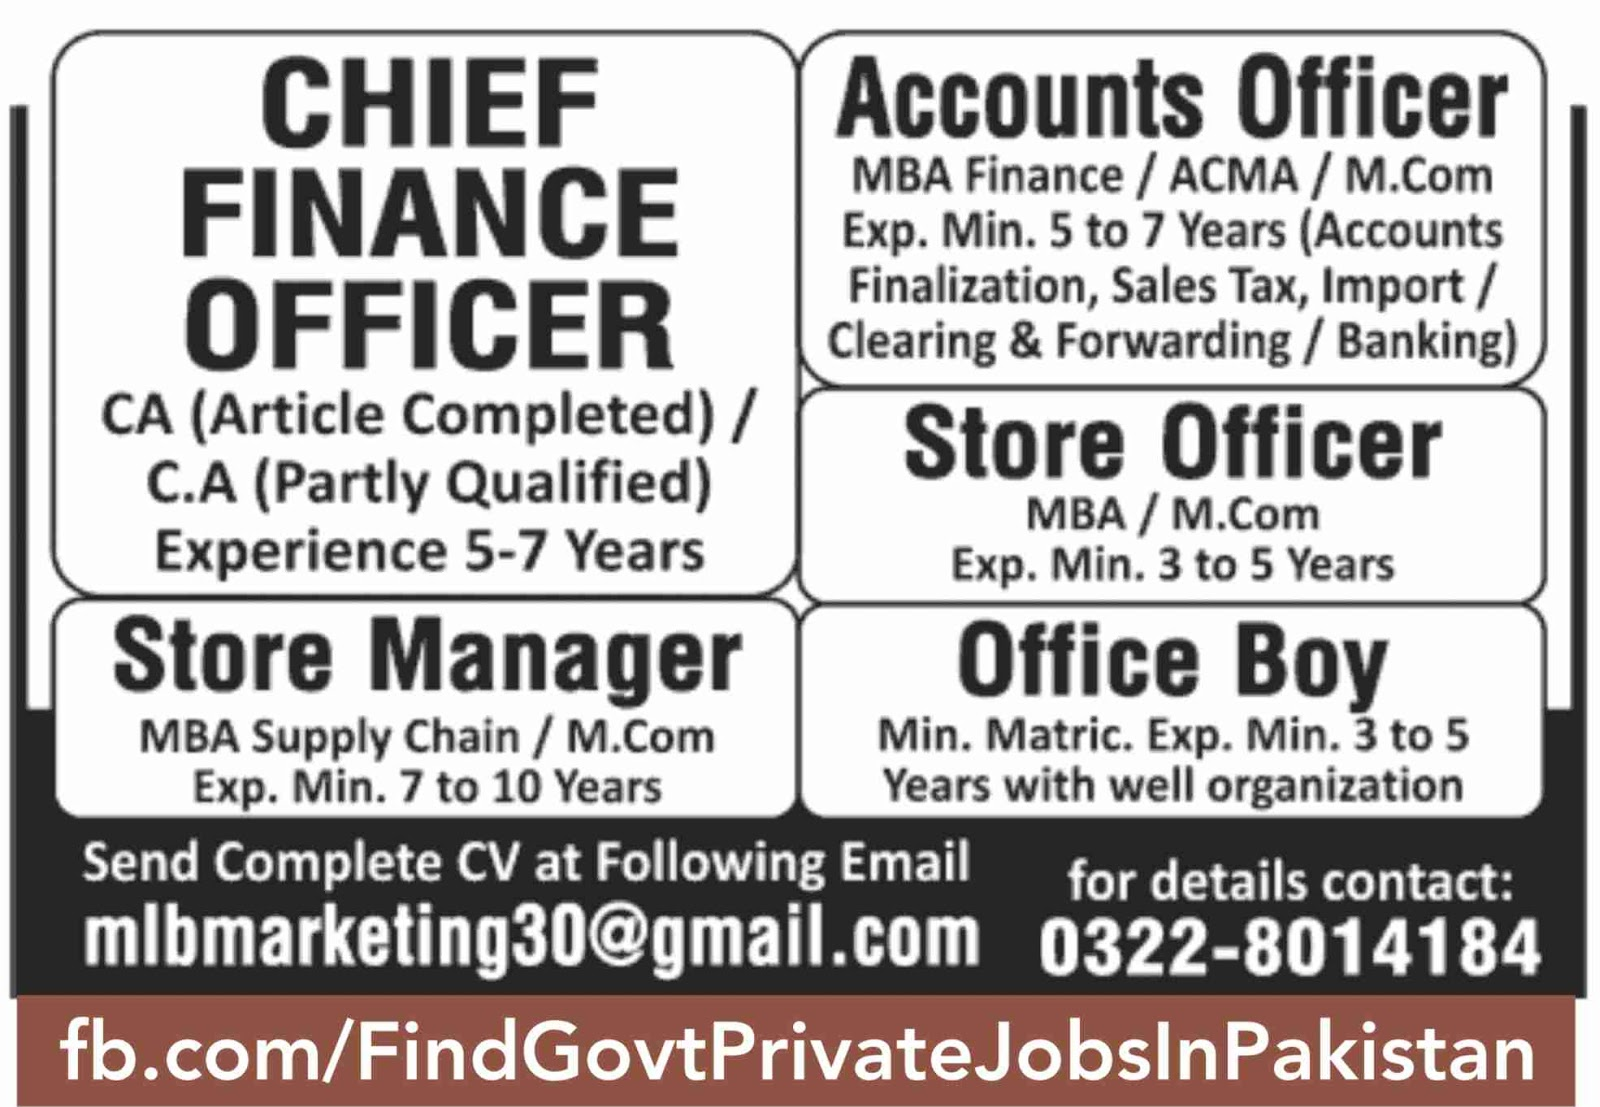 chief finance officer job ads in sunday